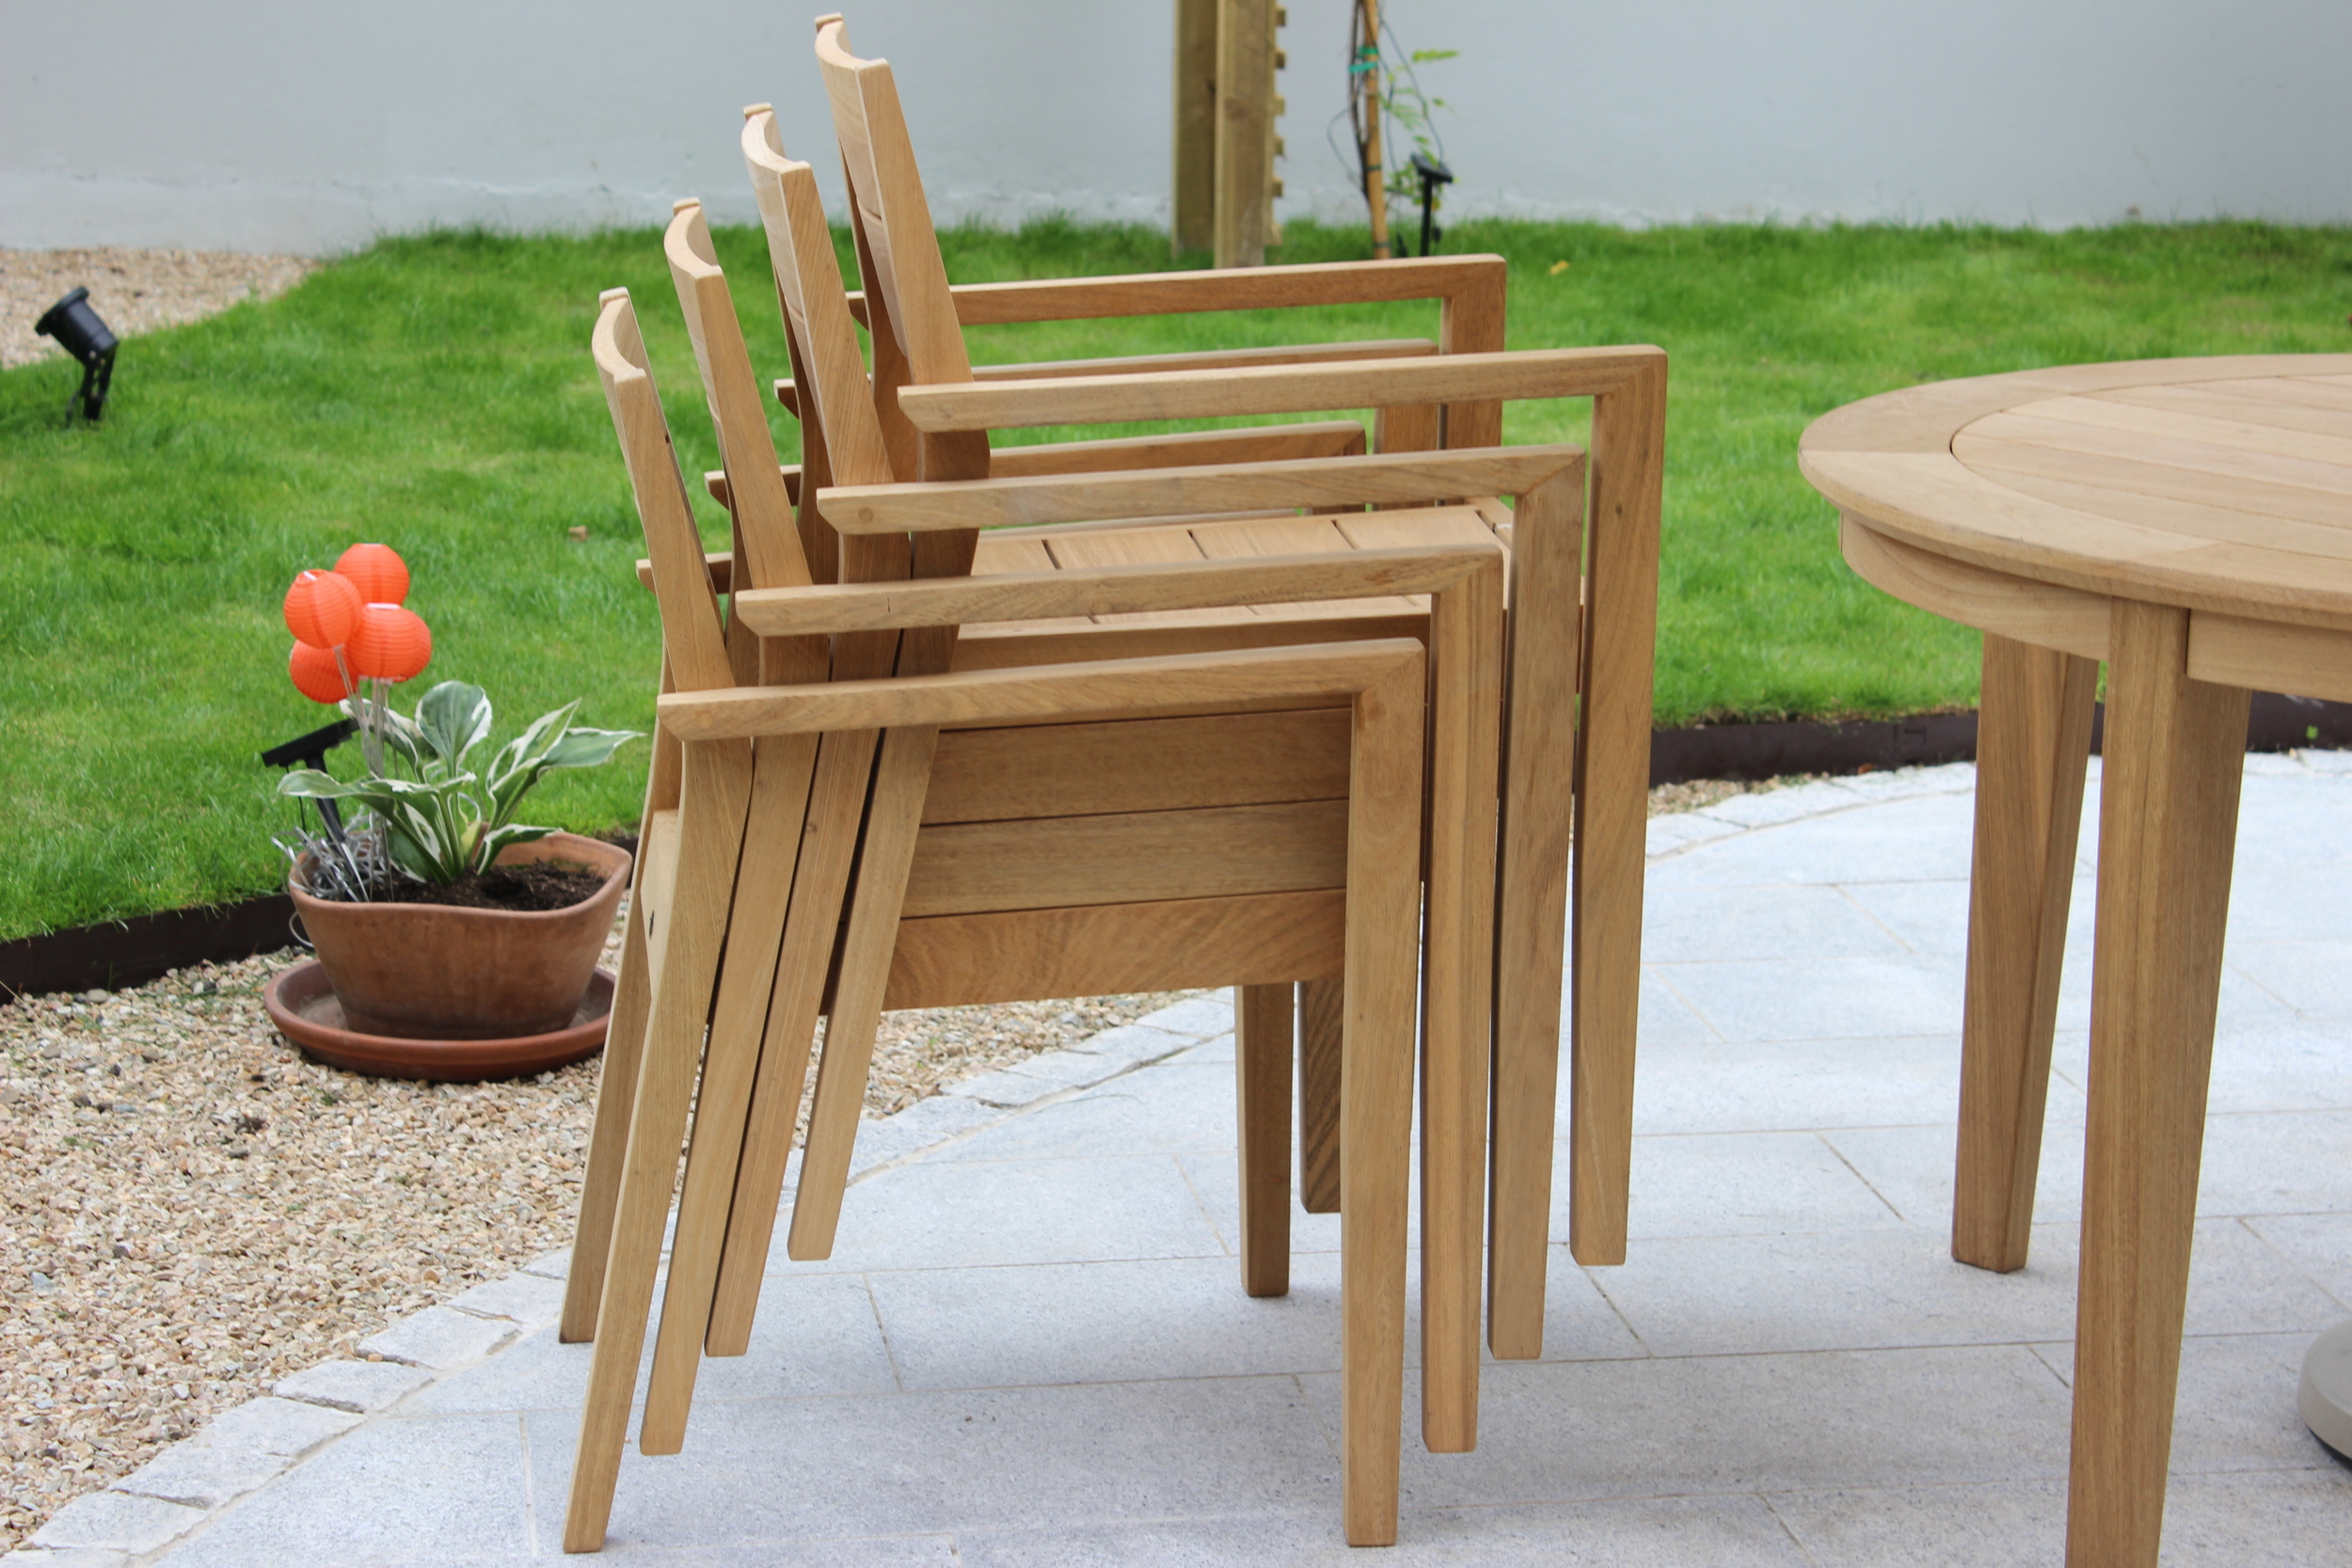 stacked Garden chairs